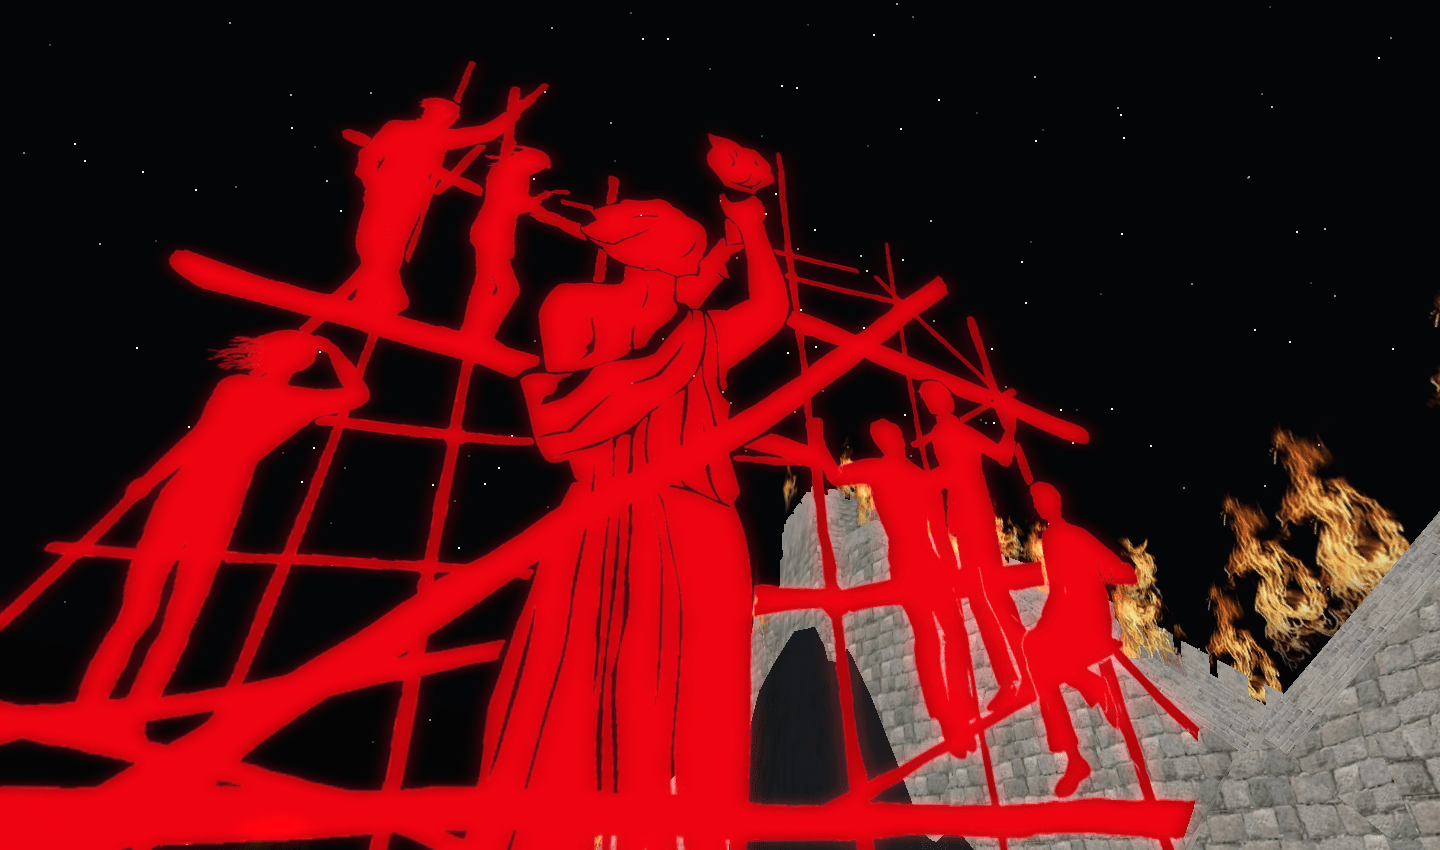 Statue in Land of Illusion in Second Life